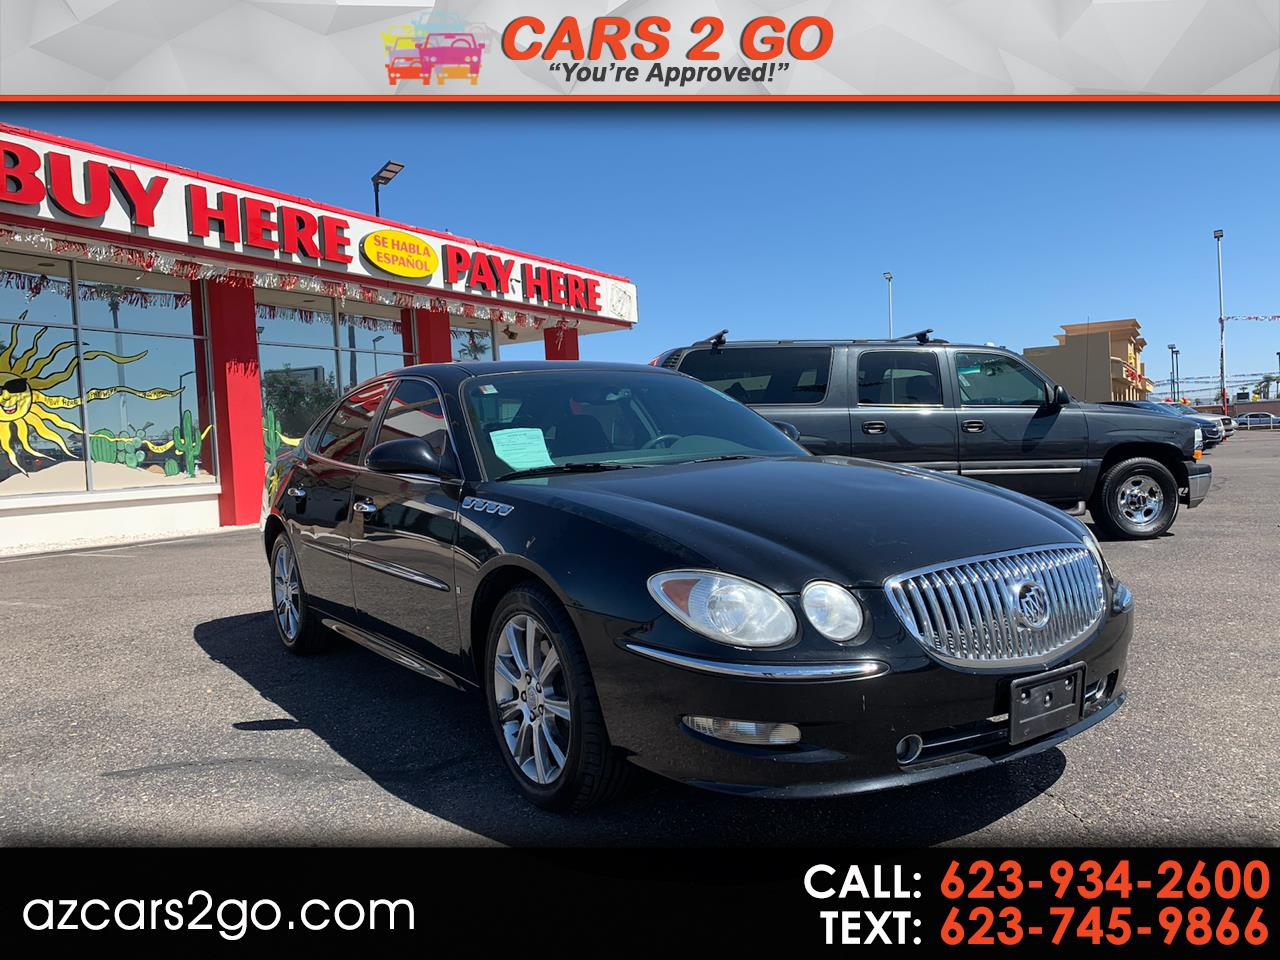 2008 Buick LaCrosse 4dr Sdn Super